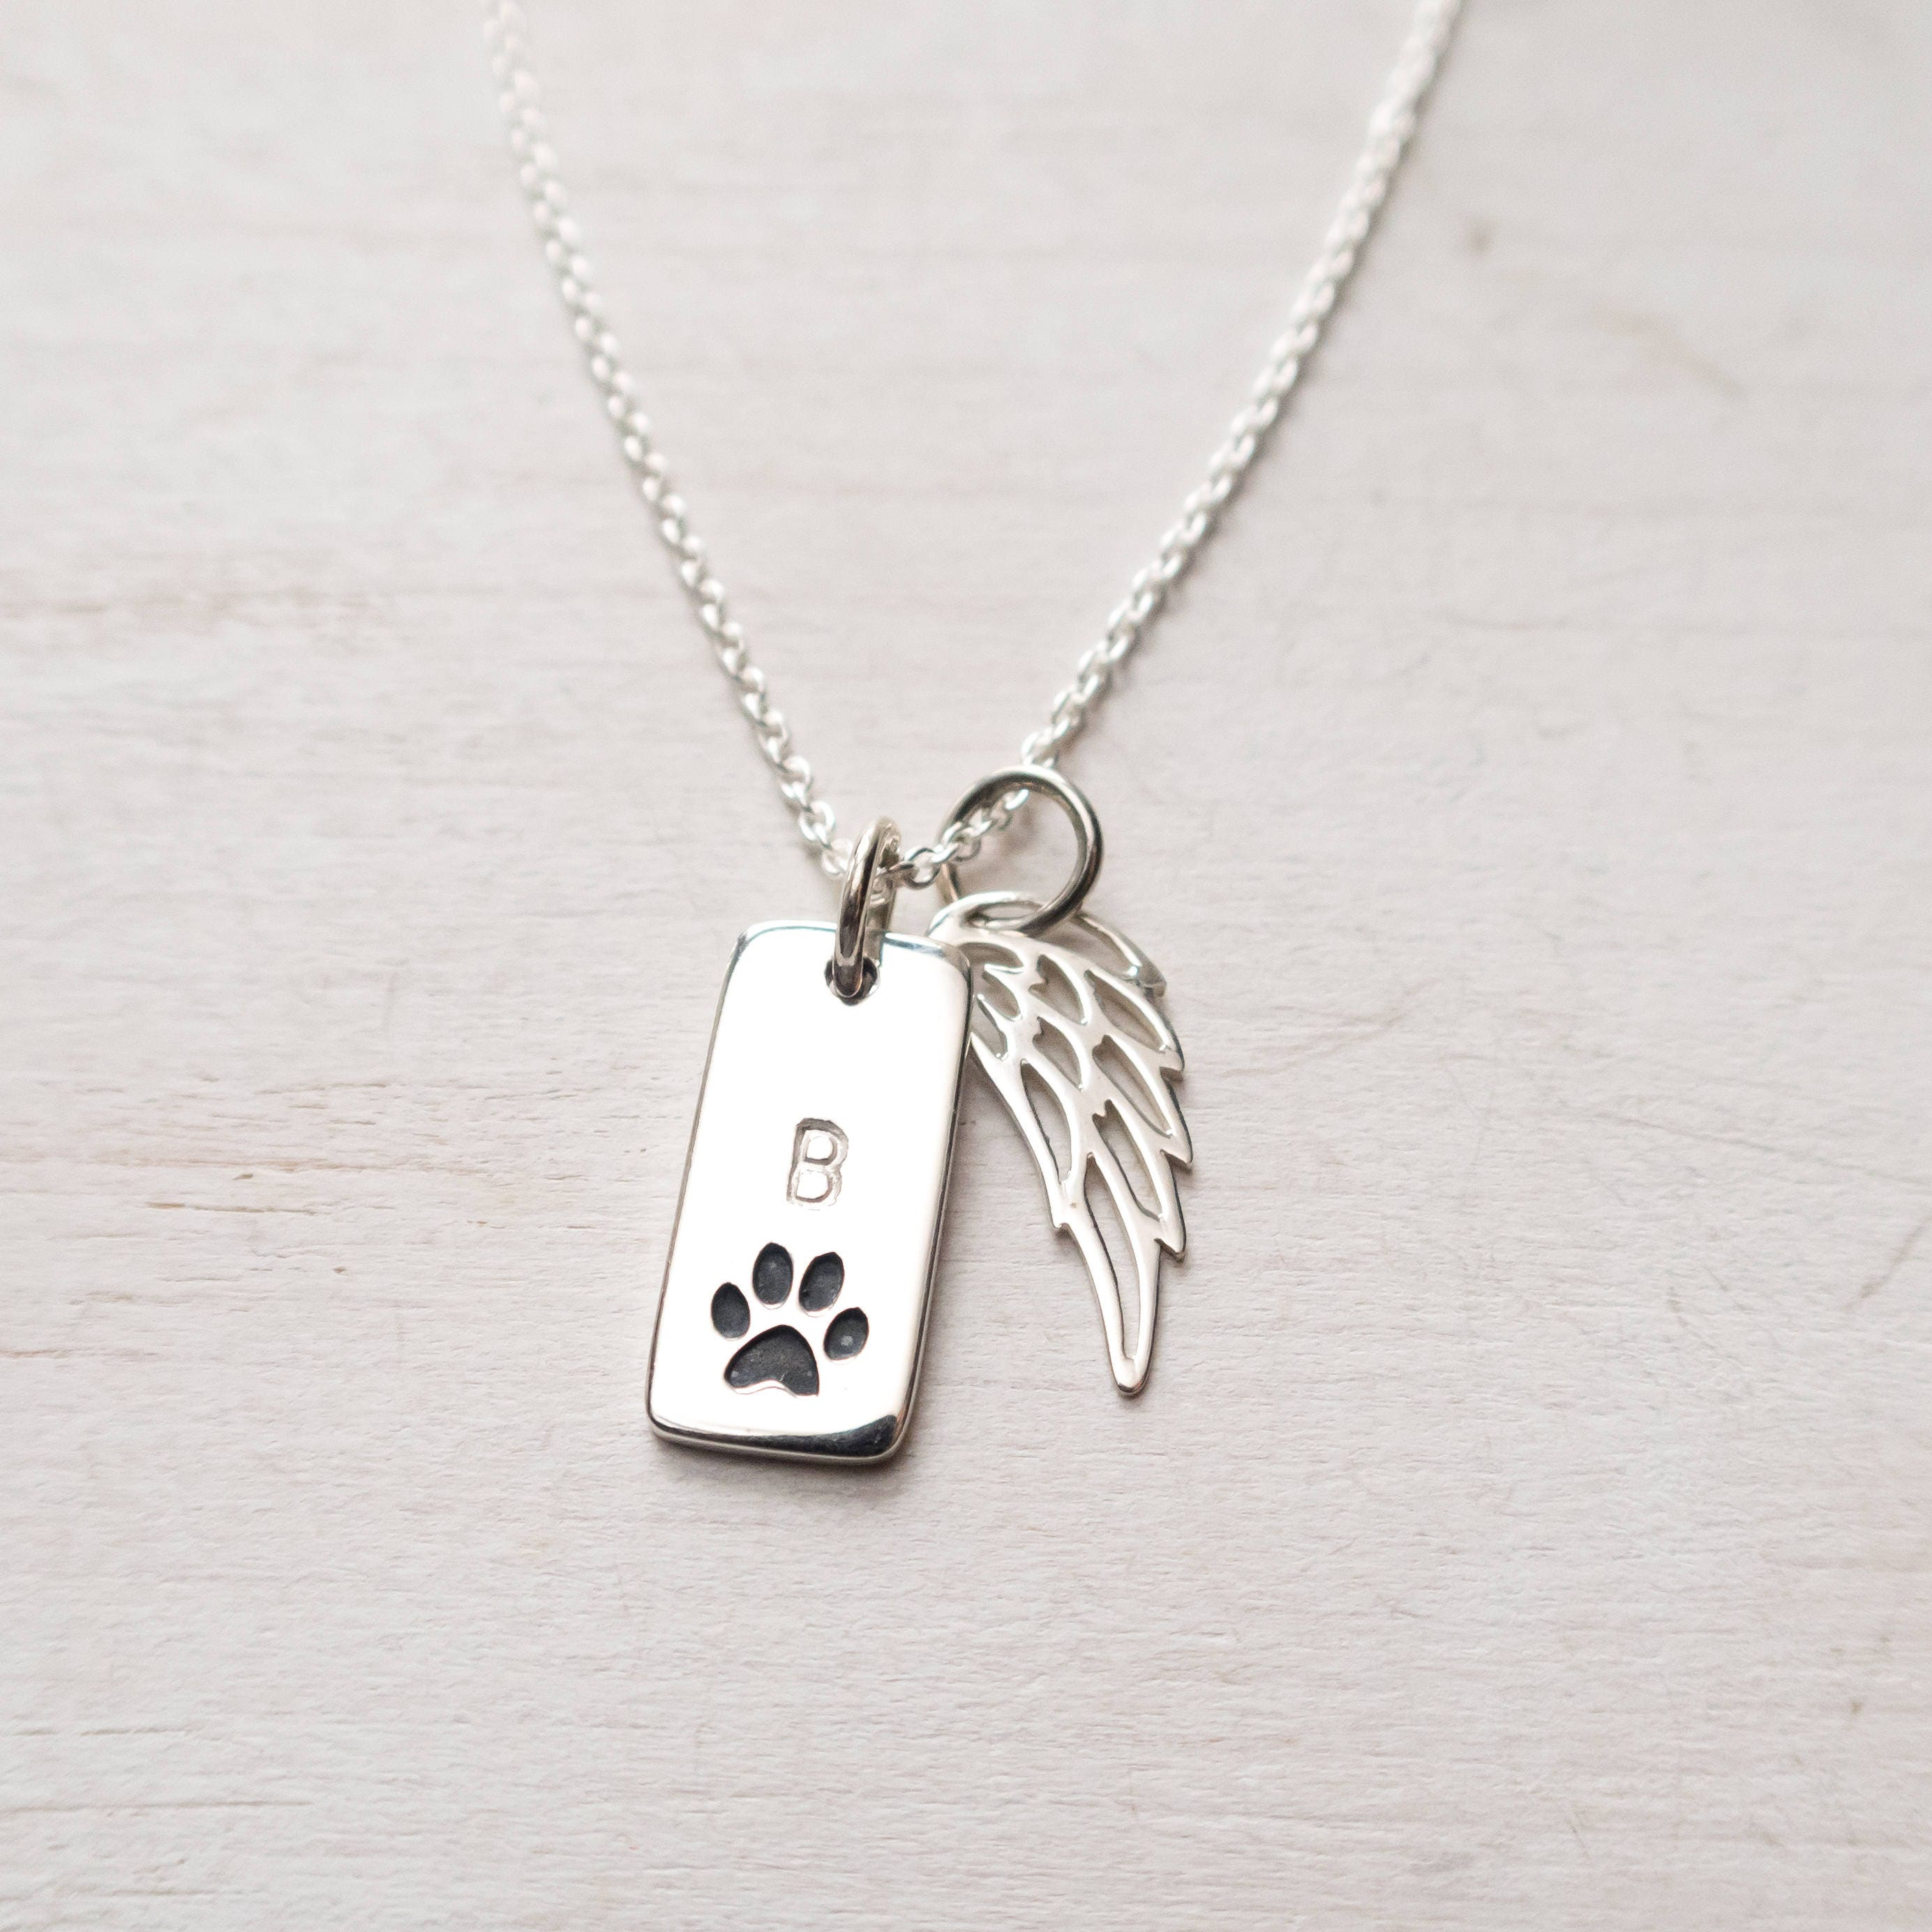 products chain dog example back cable yoga img iron strong necklace pendant silver down jewelry